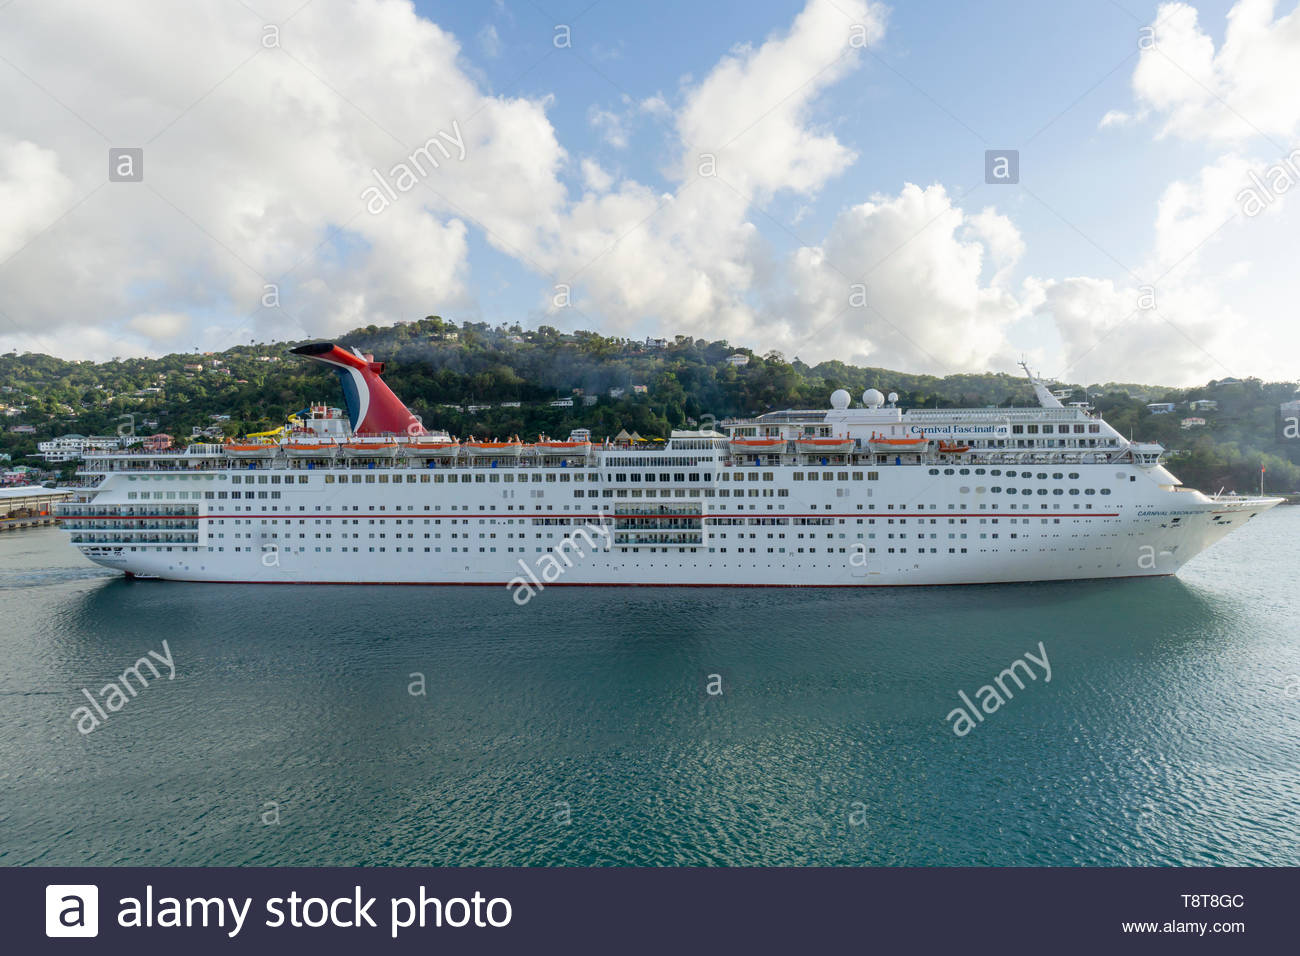 The cruise ship Carnival Fascination begins to depart the harbor at Castries on the island of Saint Lucia, West Indies, Caribbean Sea - Stock Image